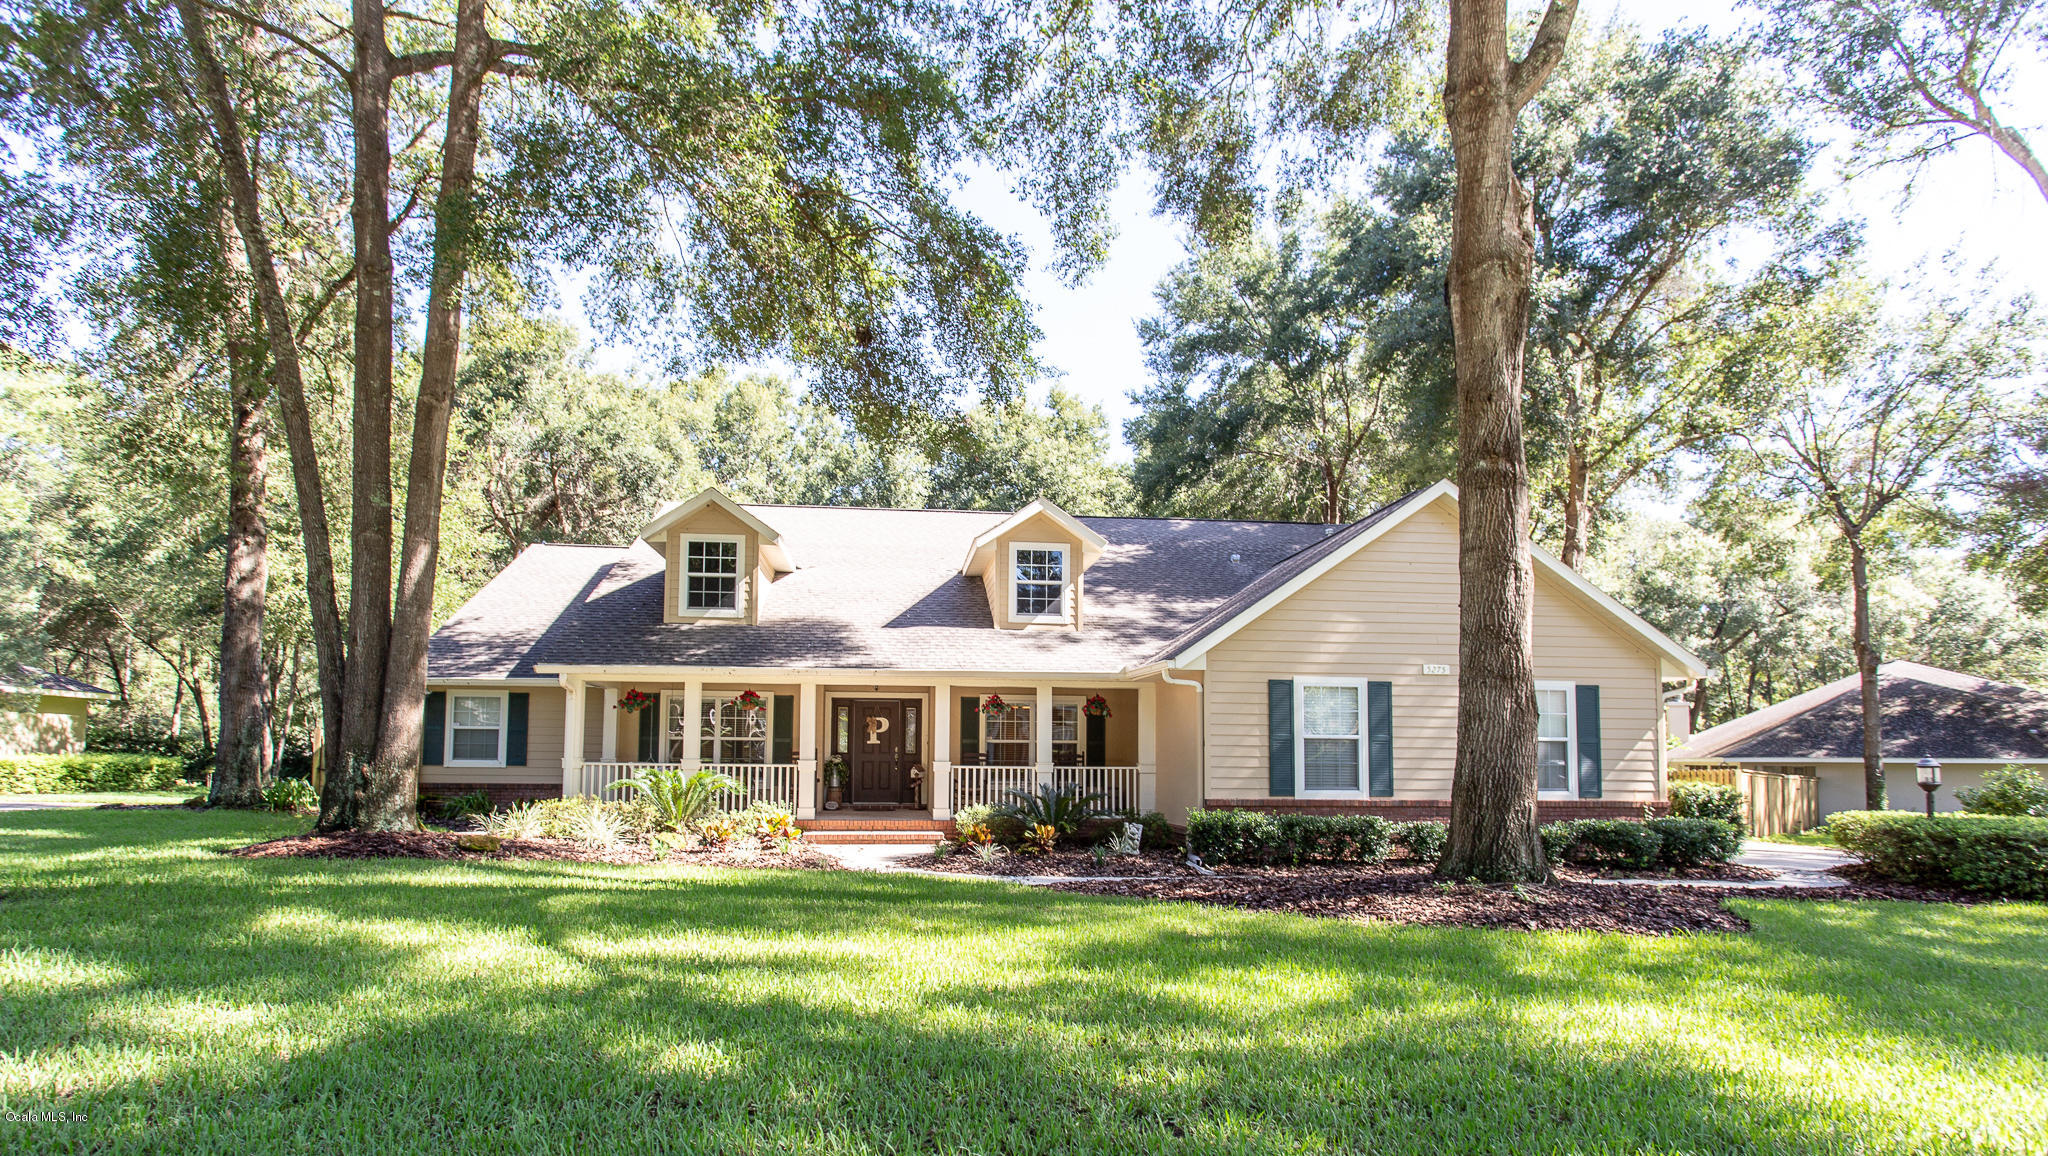 5275 SE 44TH CIRCLE, OCALA, FL 34480